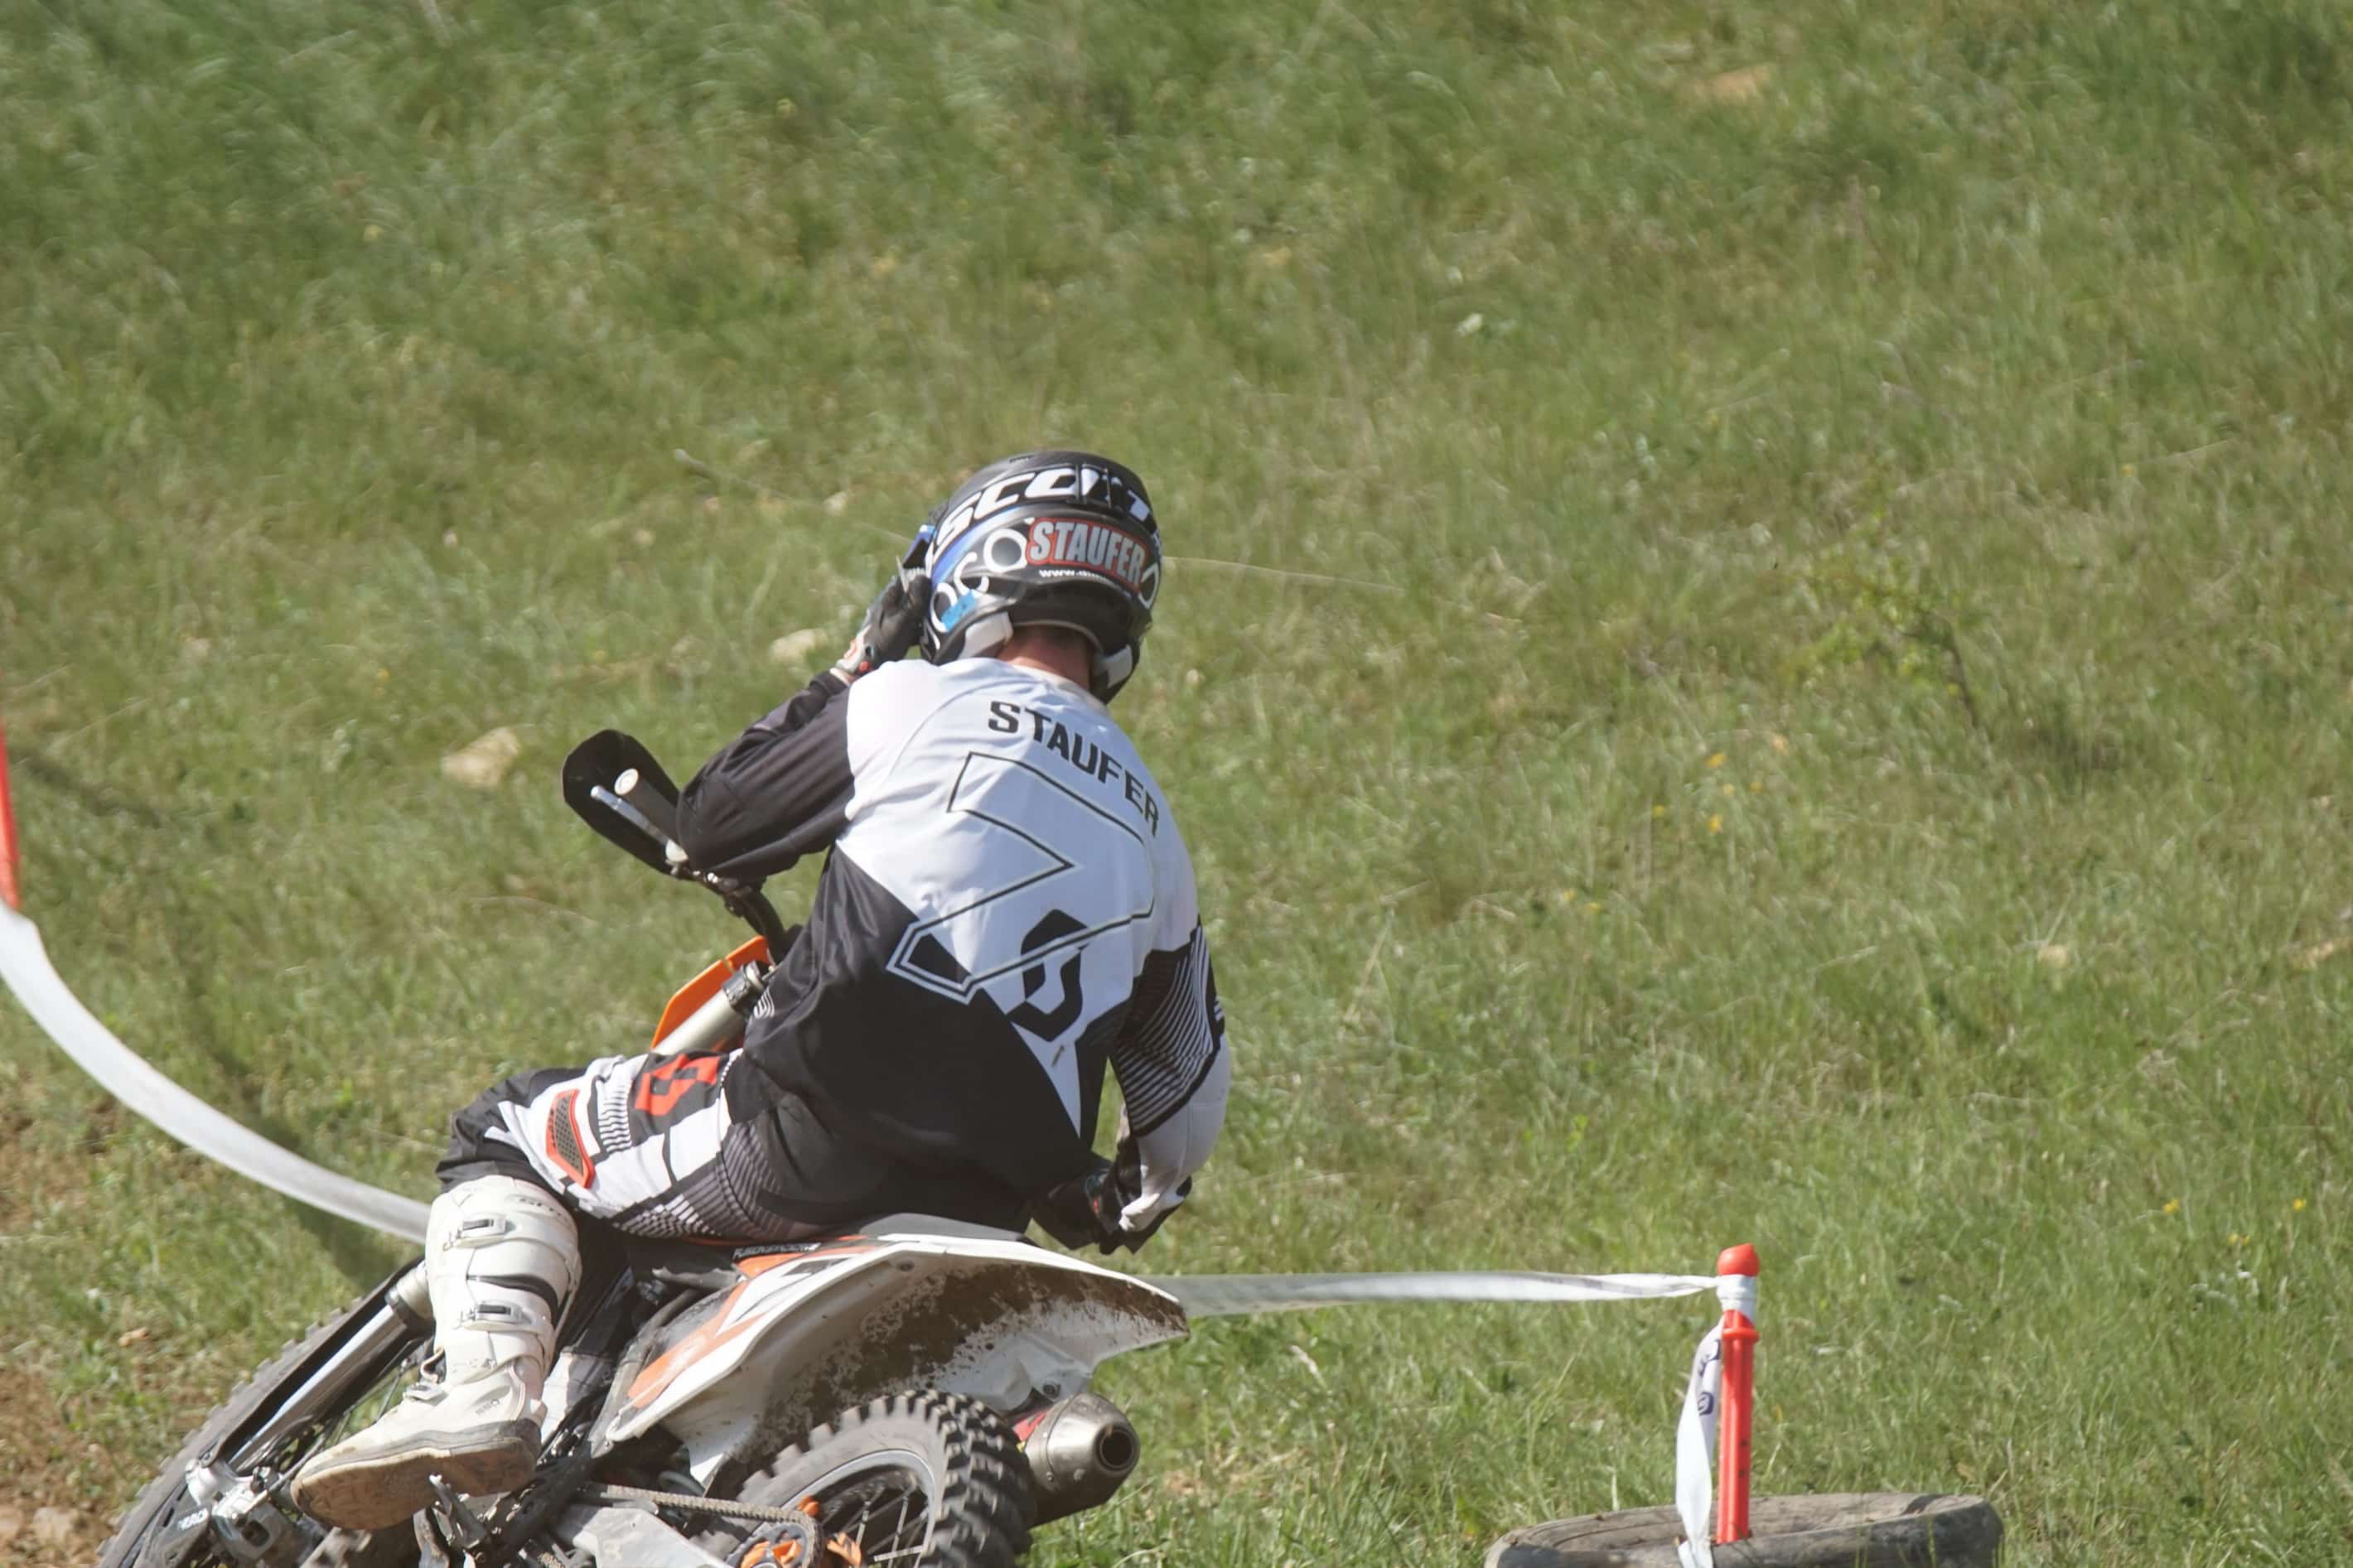 DSC 863_Moto Cross Sittendorf Teil1 am 29.04.2018